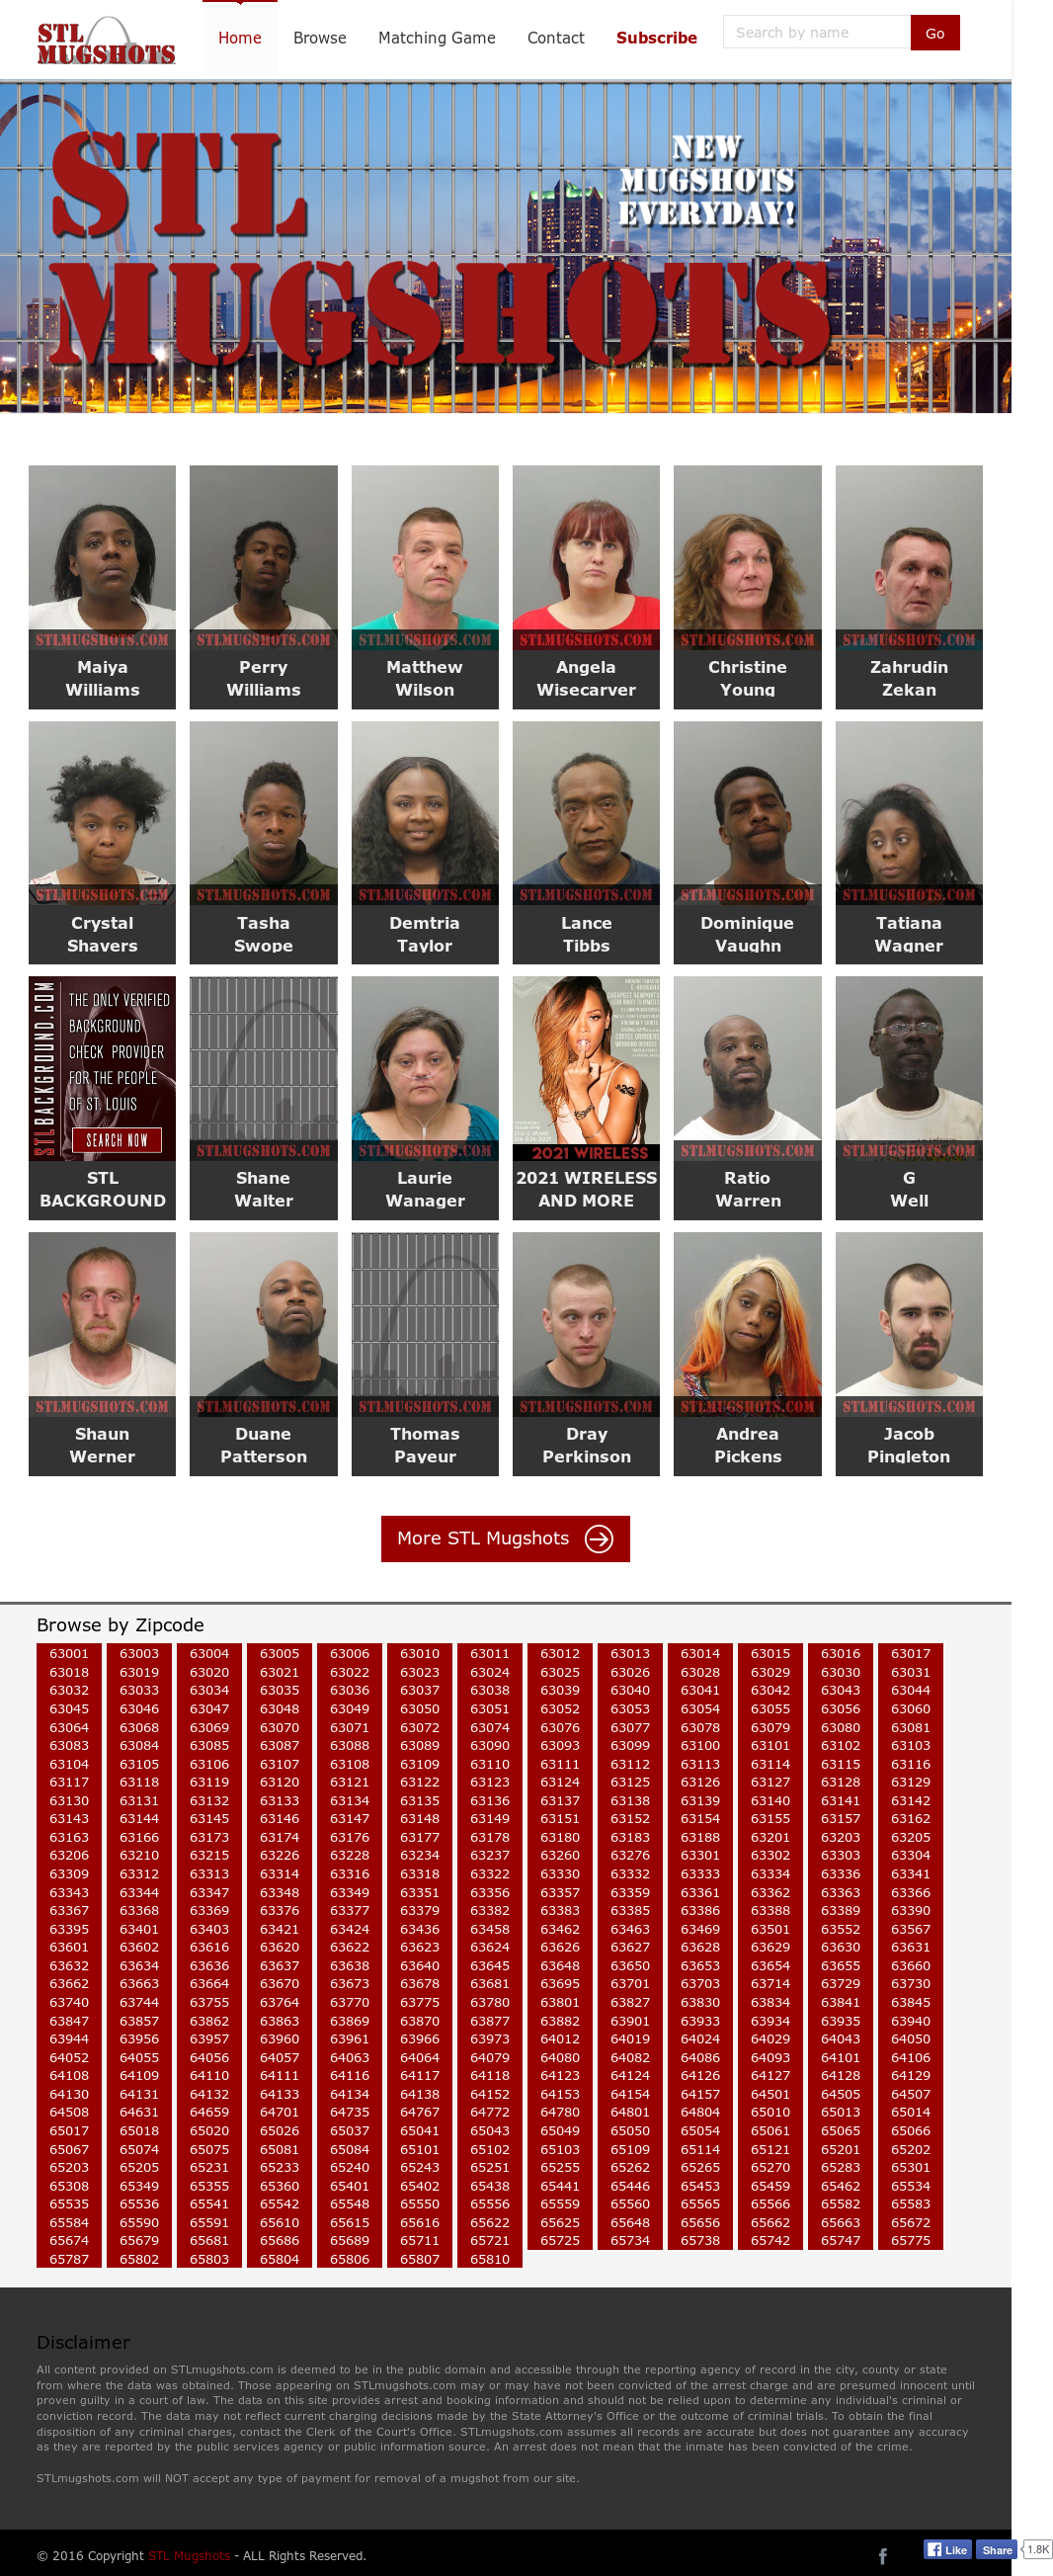 Stlmugshots Competitors, Revenue and Employees - Owler